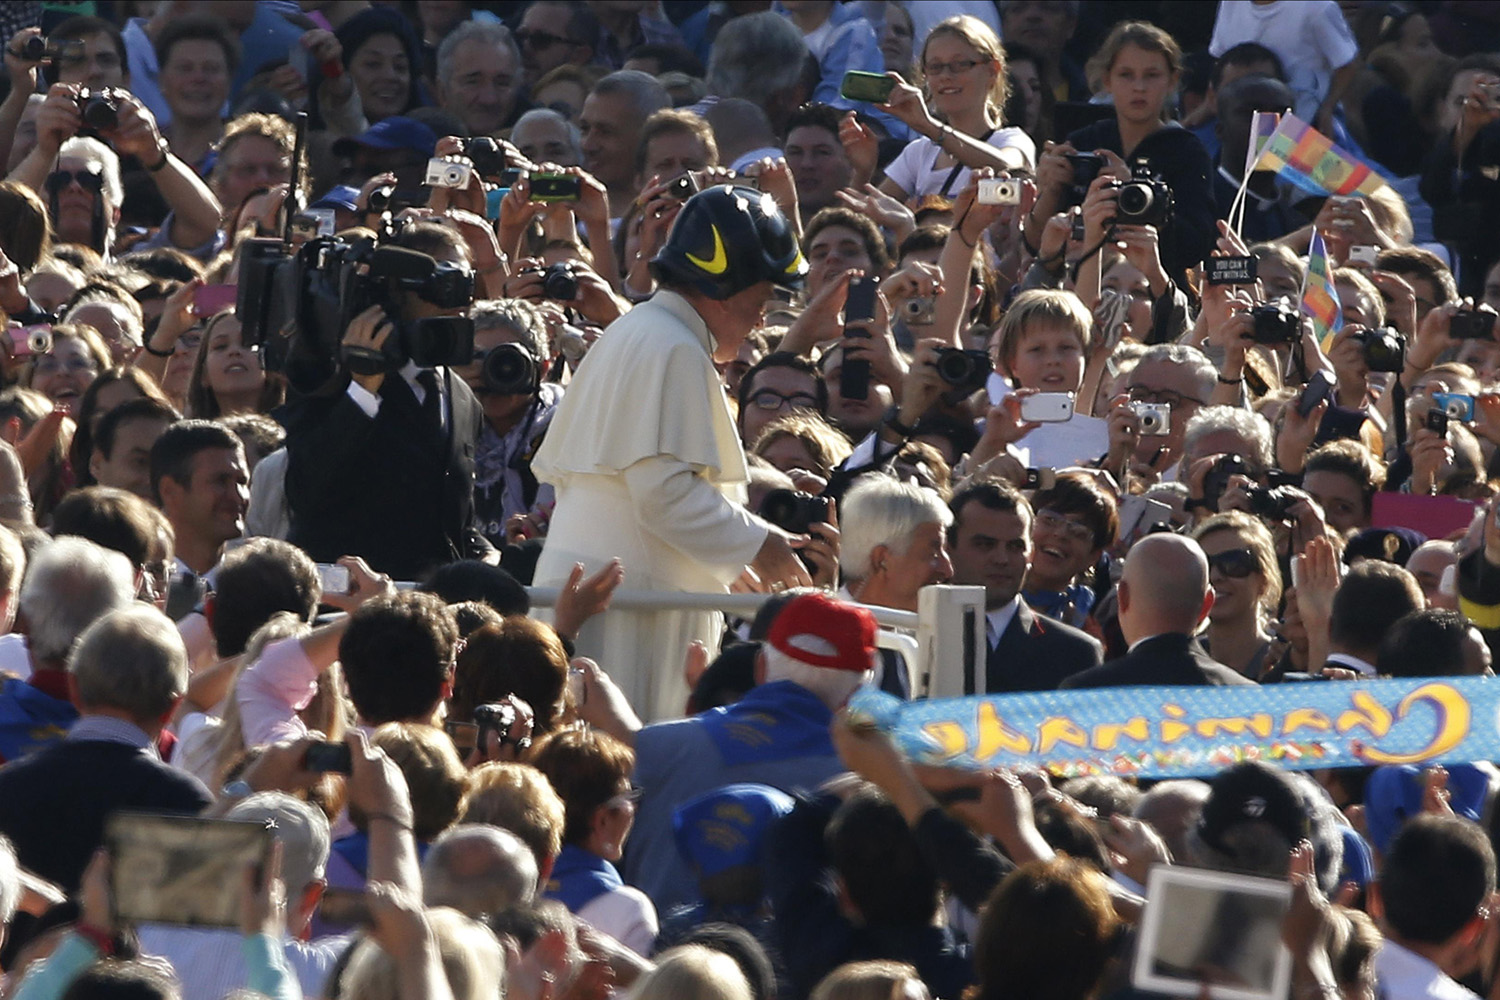 Arriving to lead his General Audience in a firefighter's helmet.